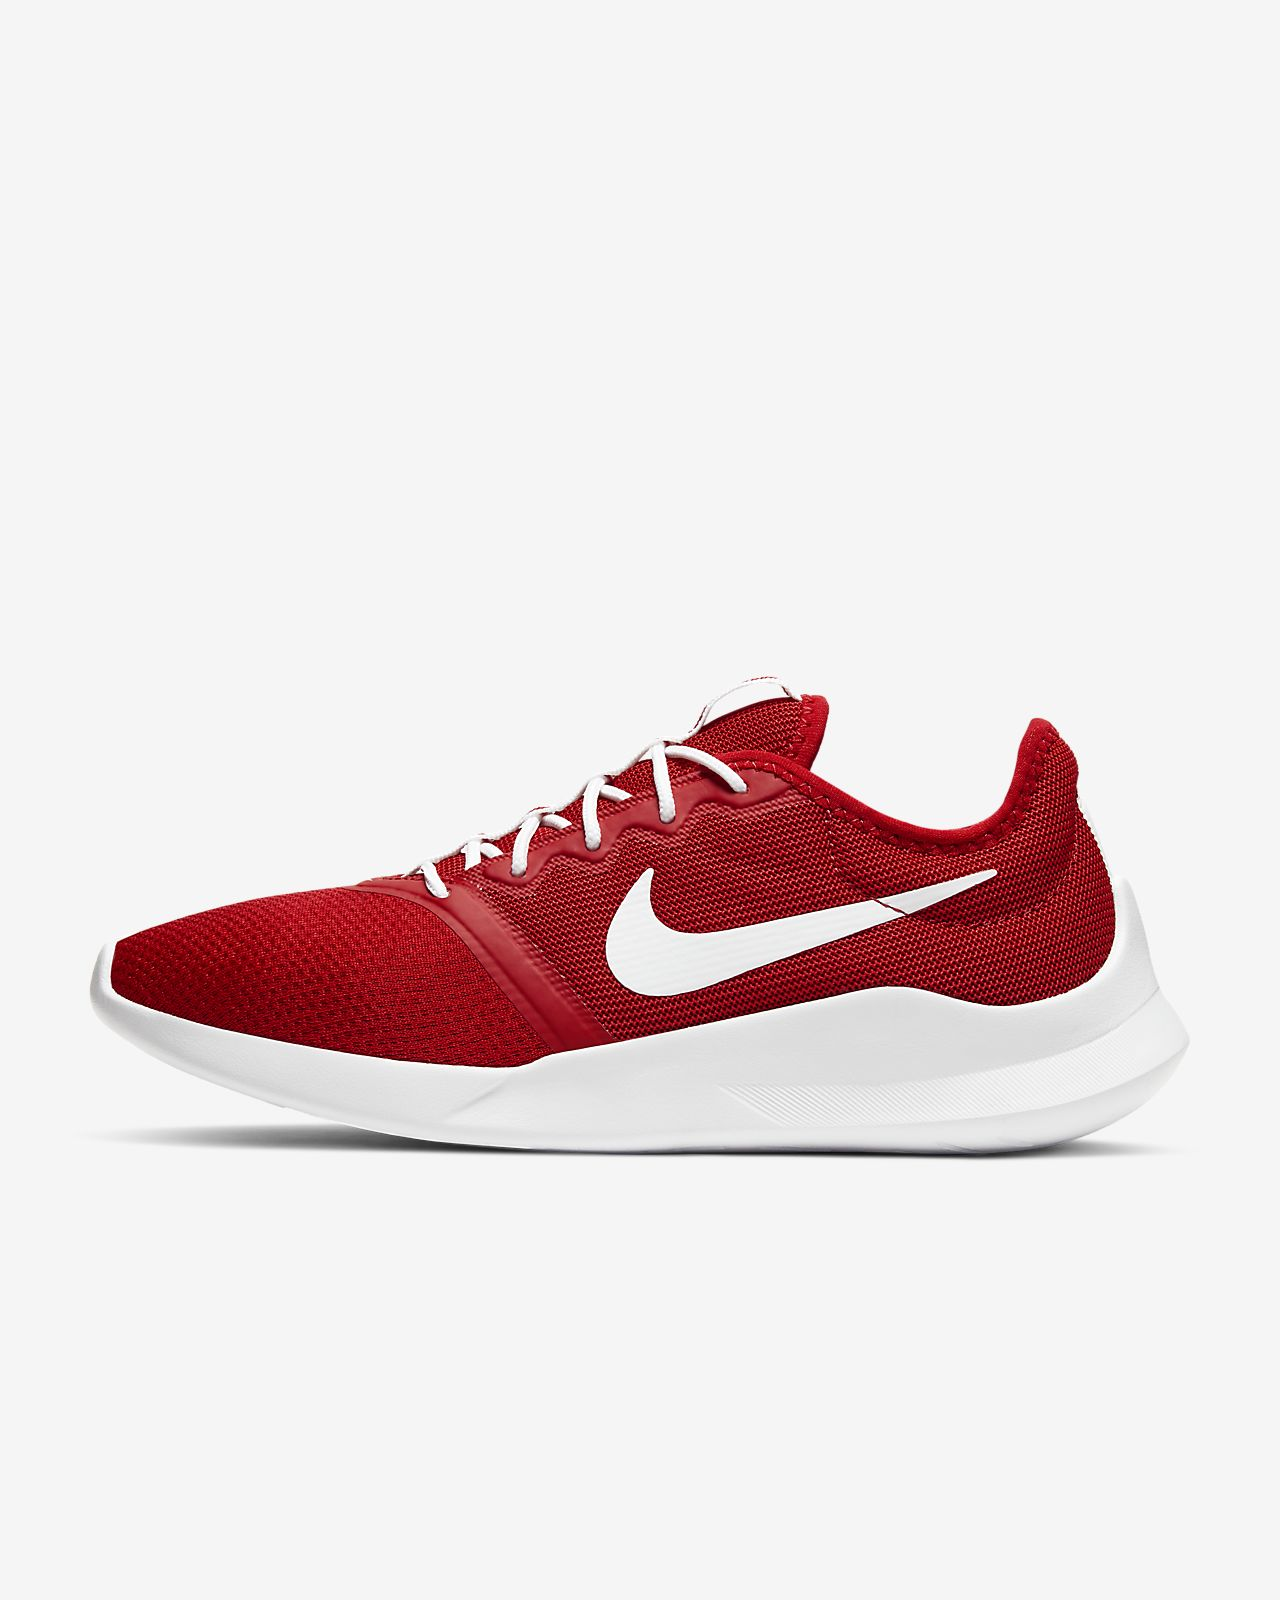 Nike Viale Tech Racer Women's Shoe